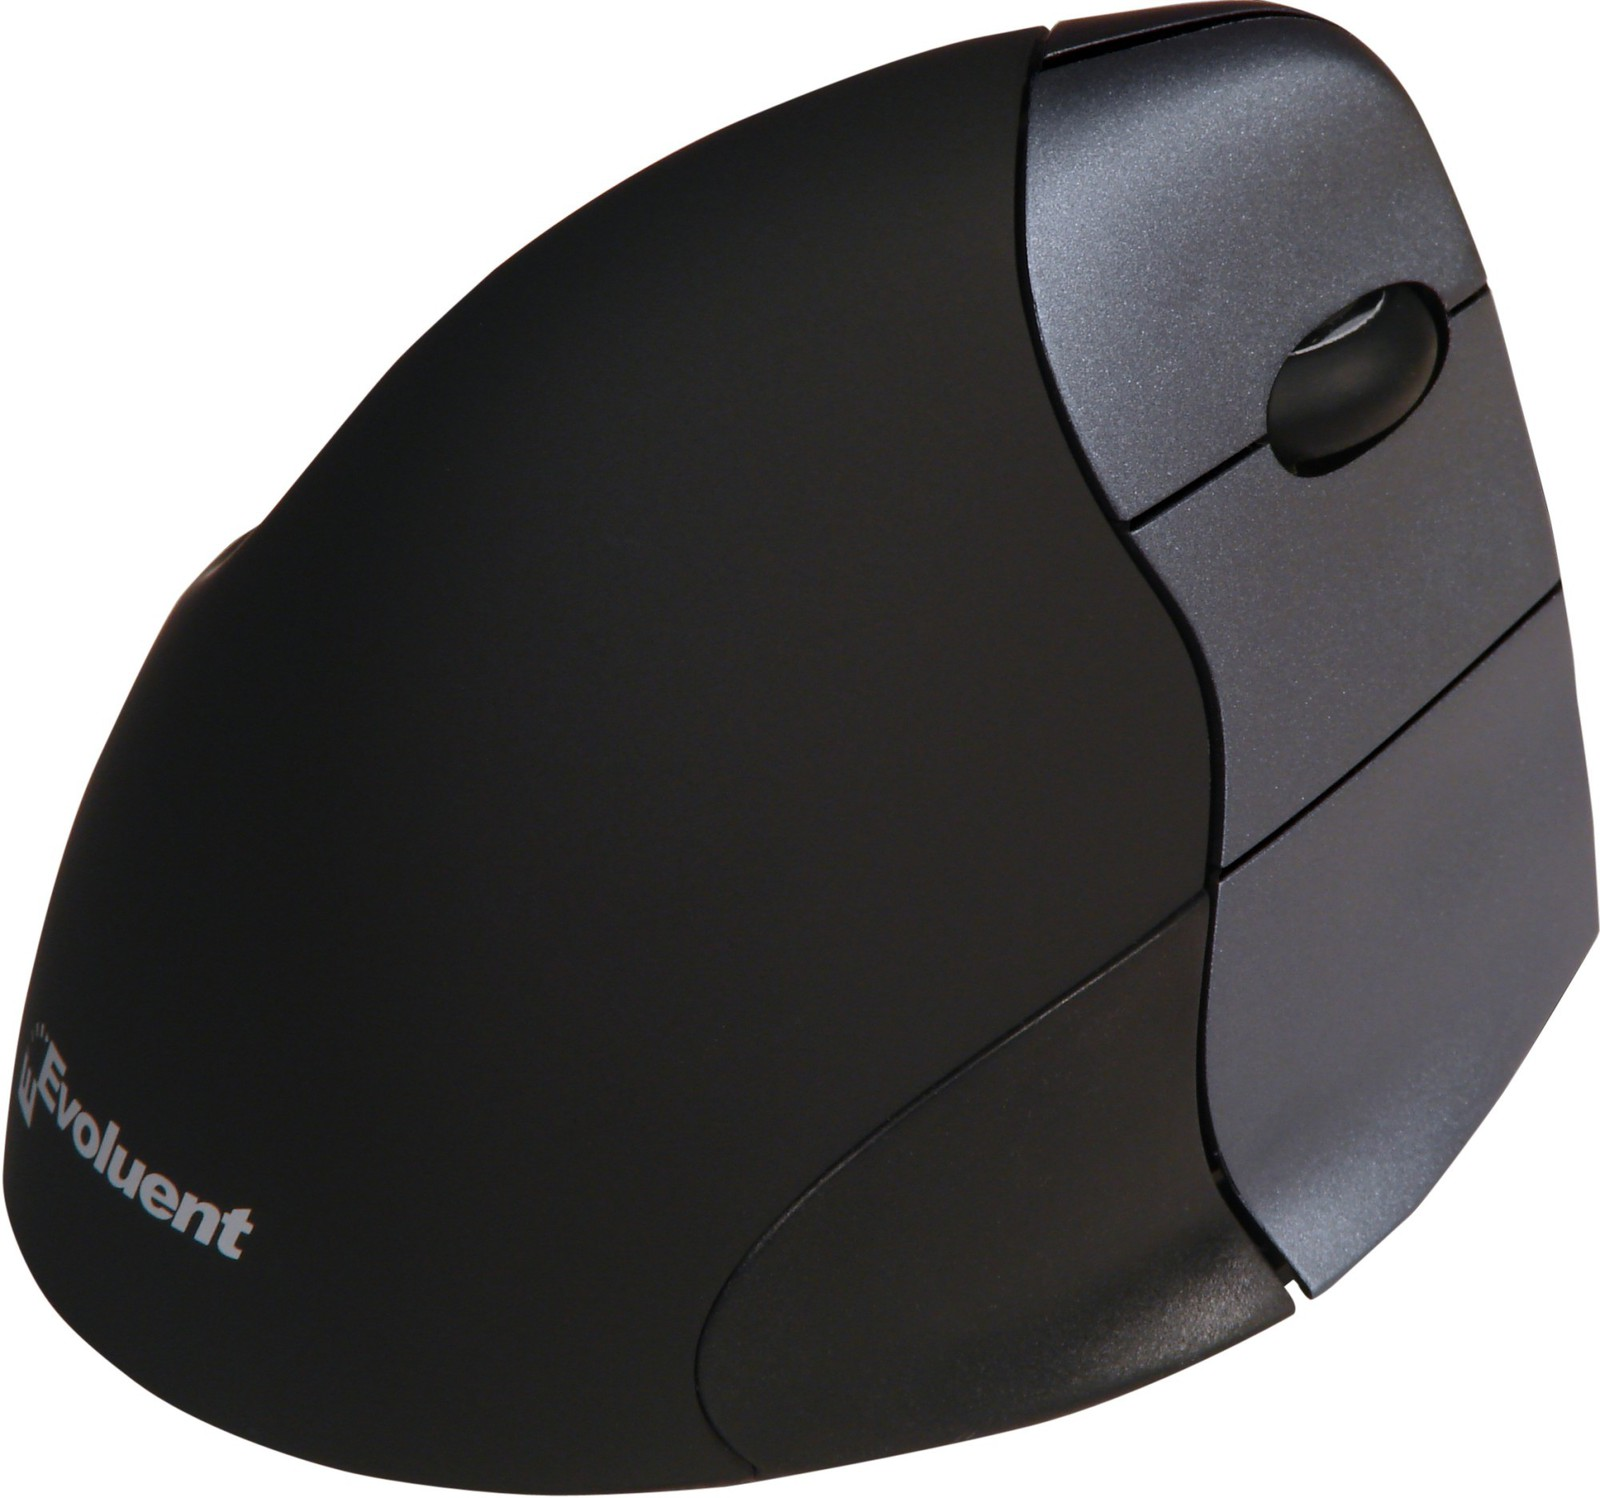 Evoluent Vertical Mouse4 WL Right hand